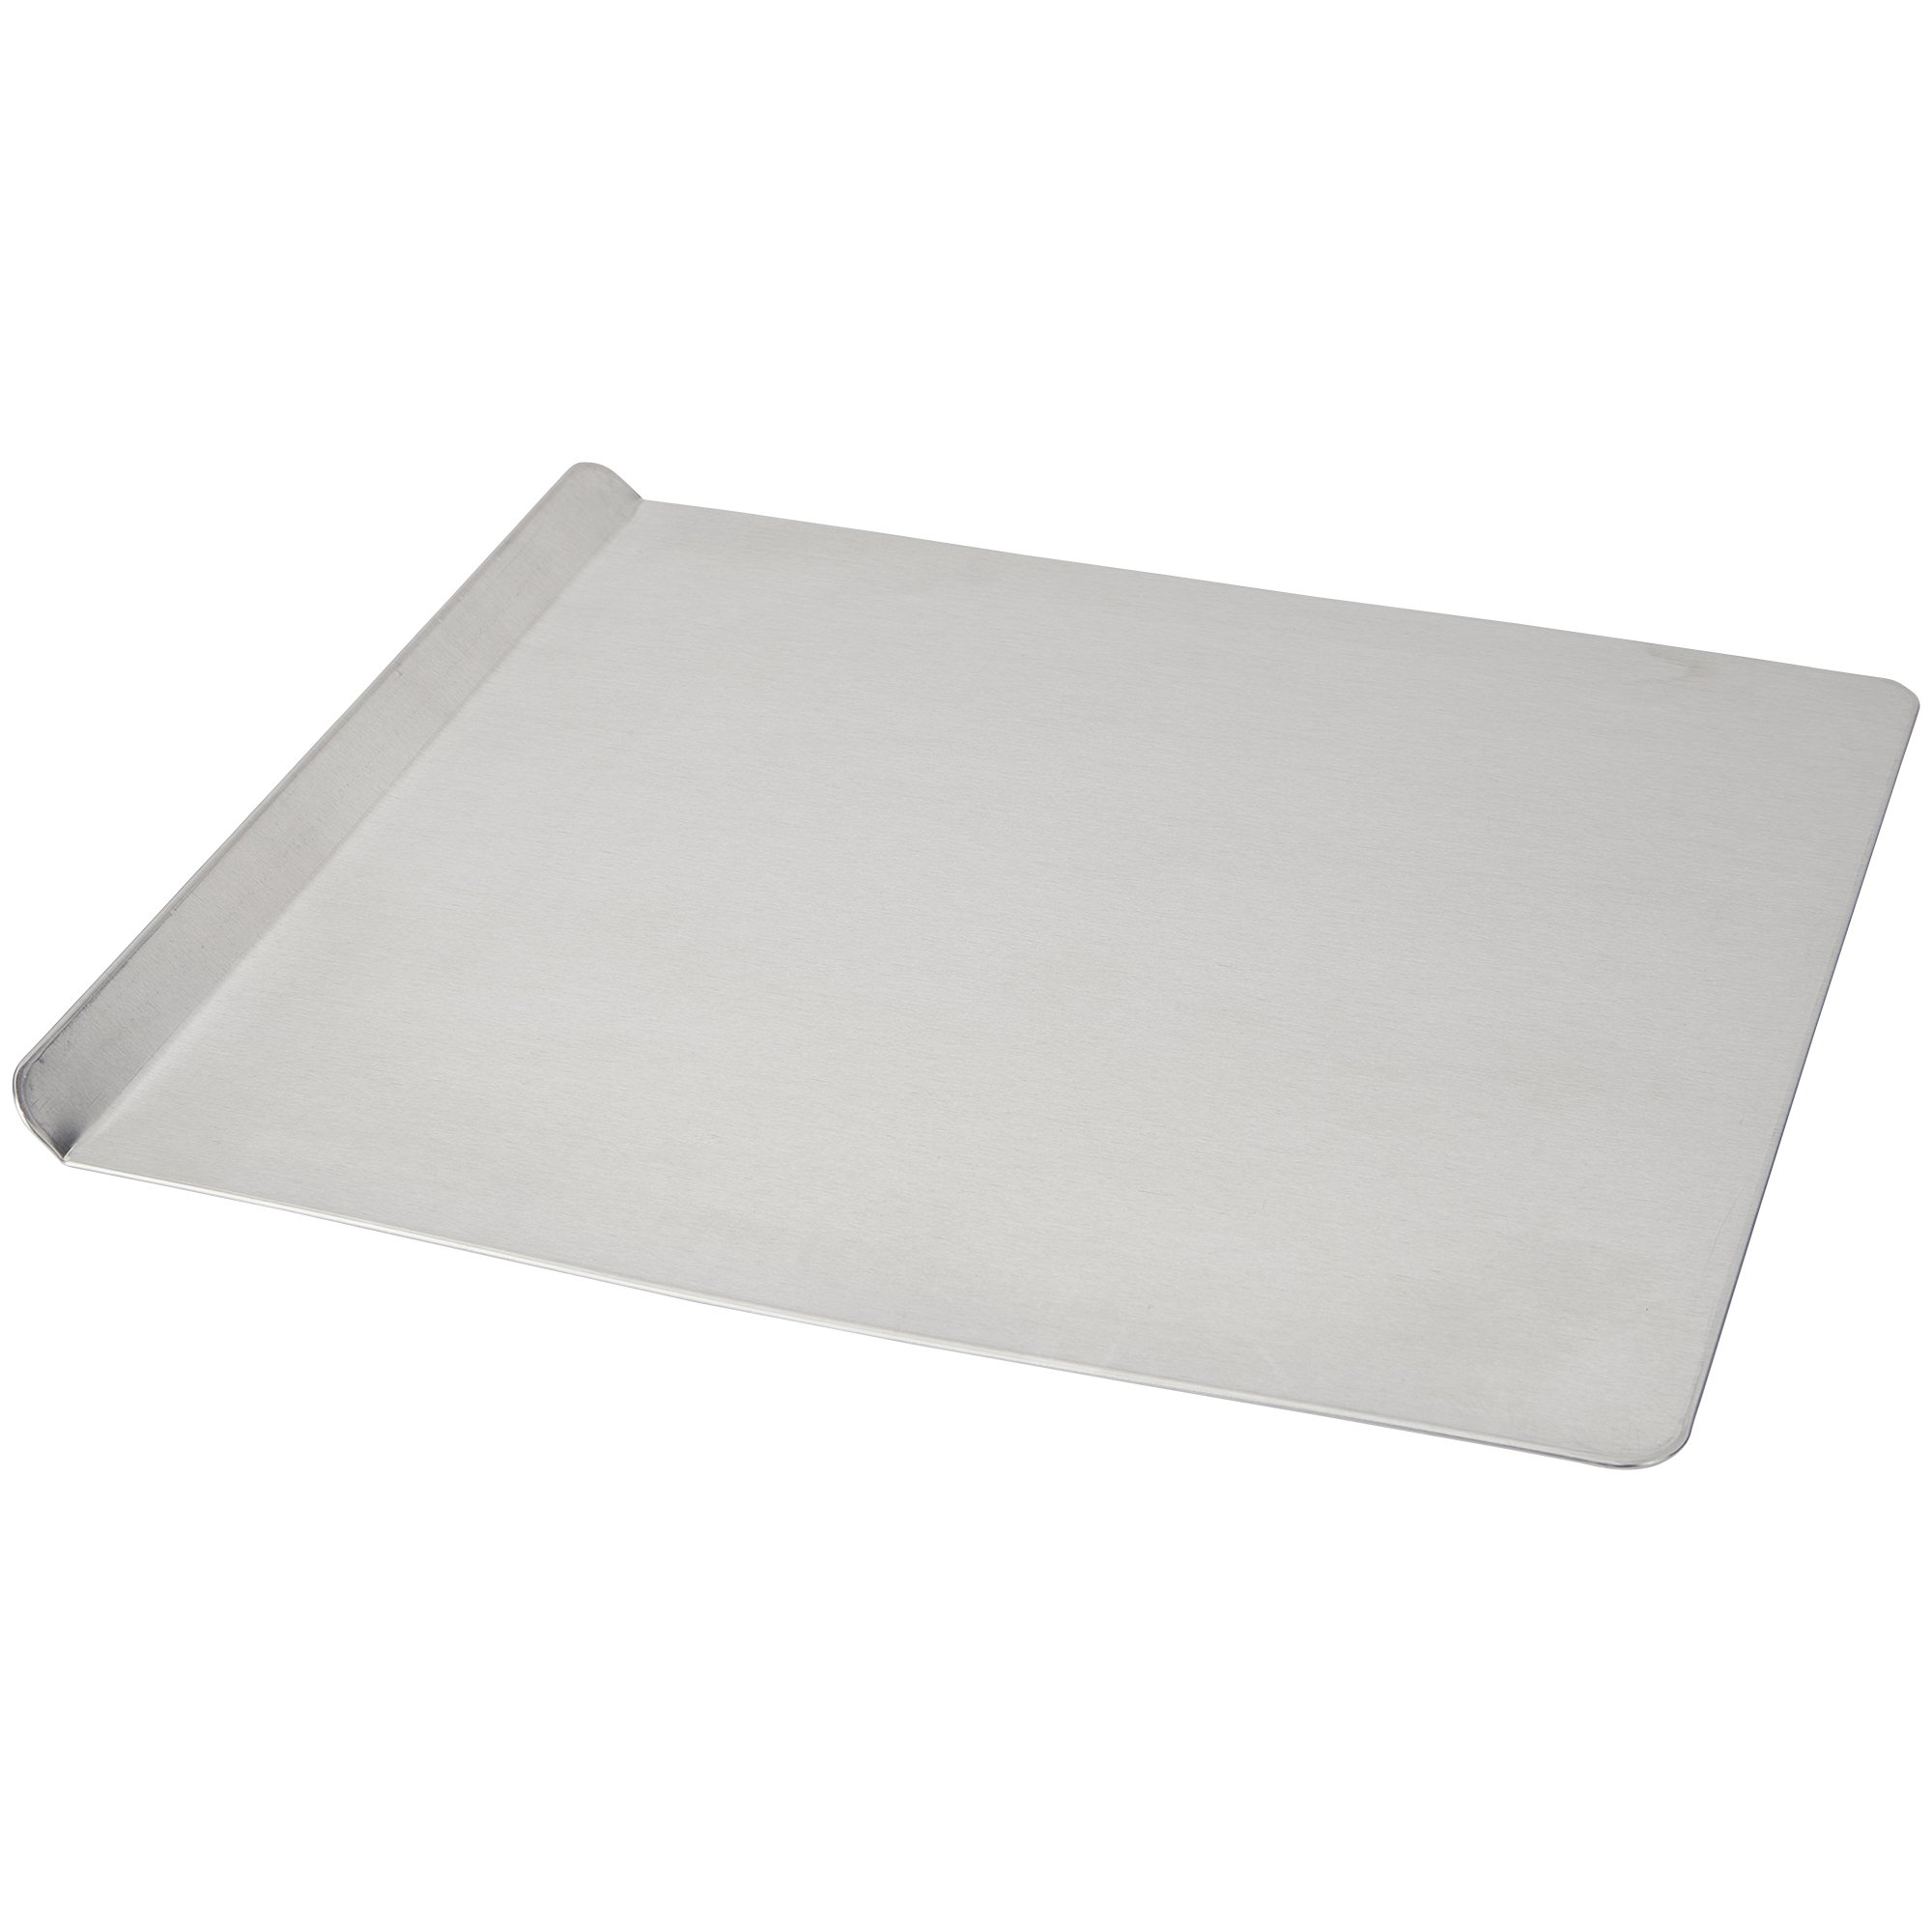 AirBake Natural 2 Pack Cookie Sheet Set, 16 x 14 in by T-fal (Image #4)